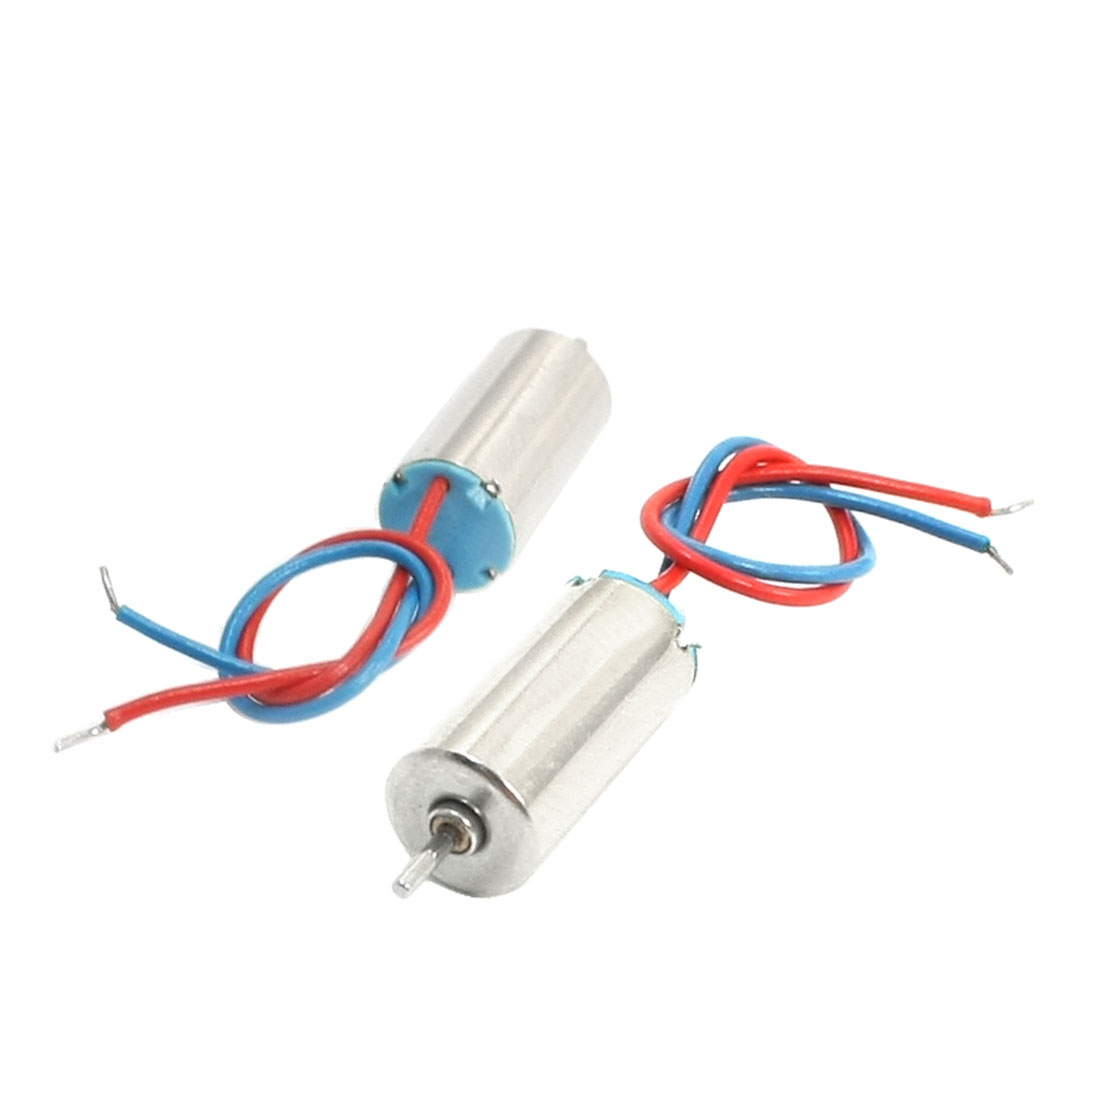 1mm-Dia-Shaft-Two-Wire-Connector-RC-Aircraft-Motor-DC-1-5V-1000RPM